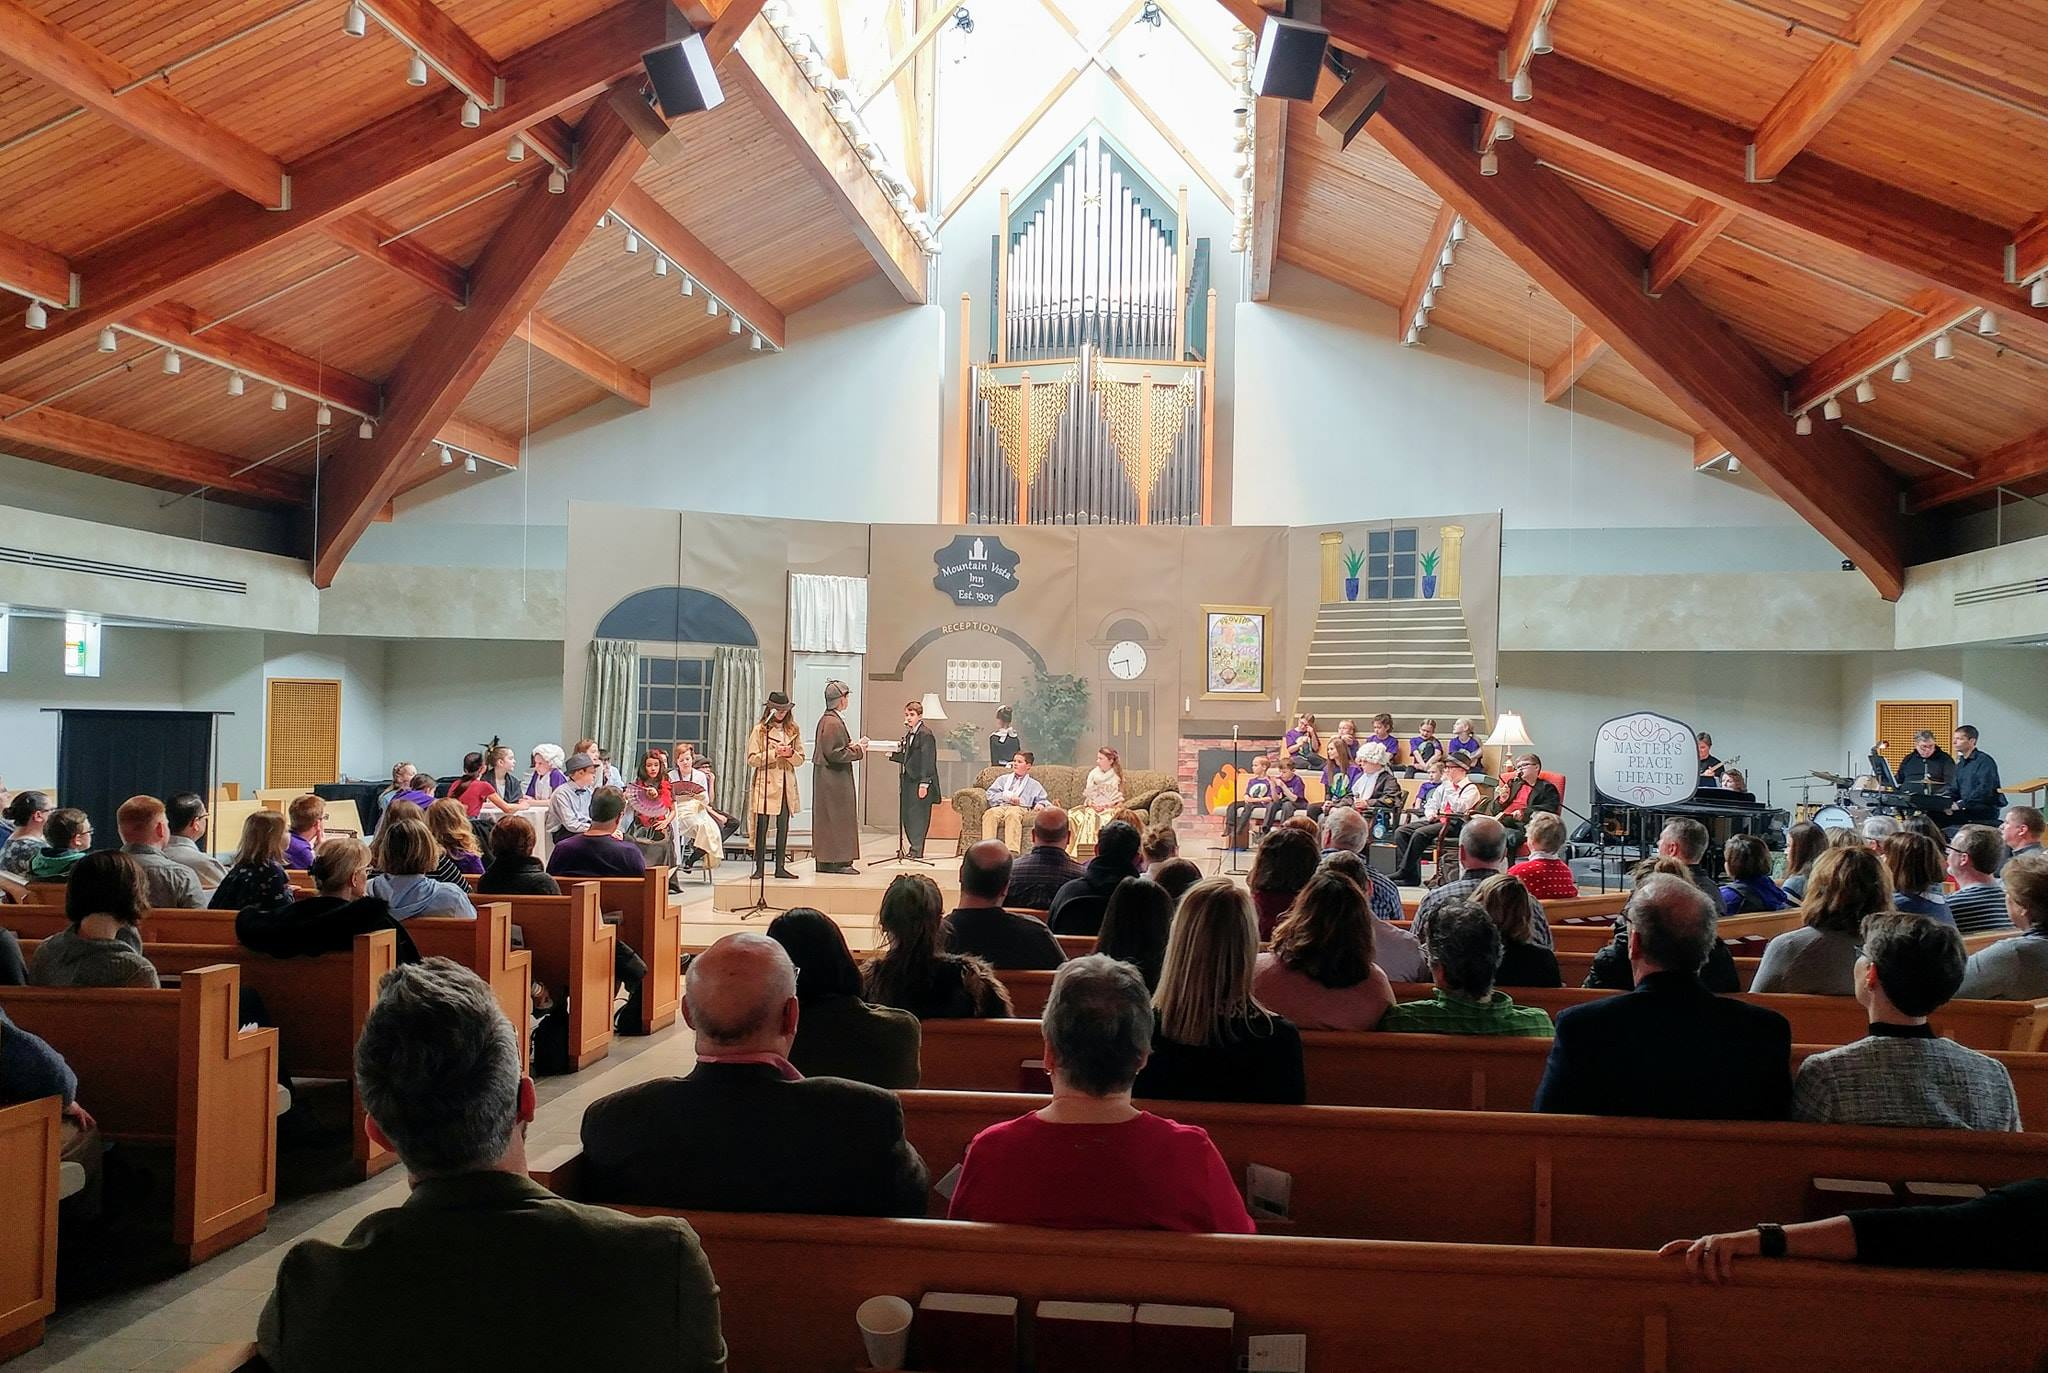 A Not So Terrible Parable, the 32nd Annual Children's Musical packed the sanctuary in February 2019.